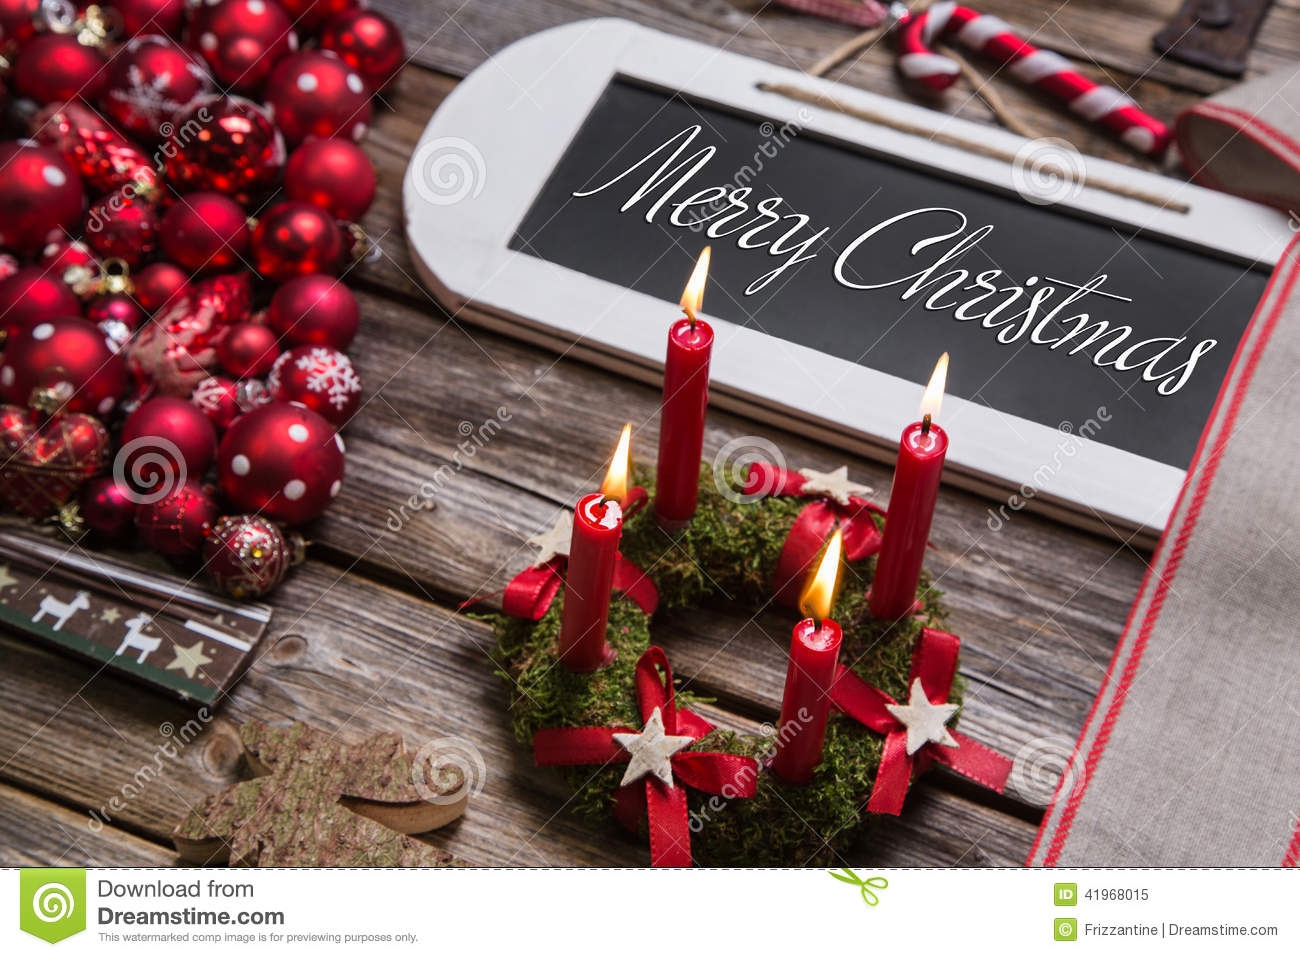 Auguri Di Buon Natale Merry Christmas.Buon Natale Country Frismarketingadvies